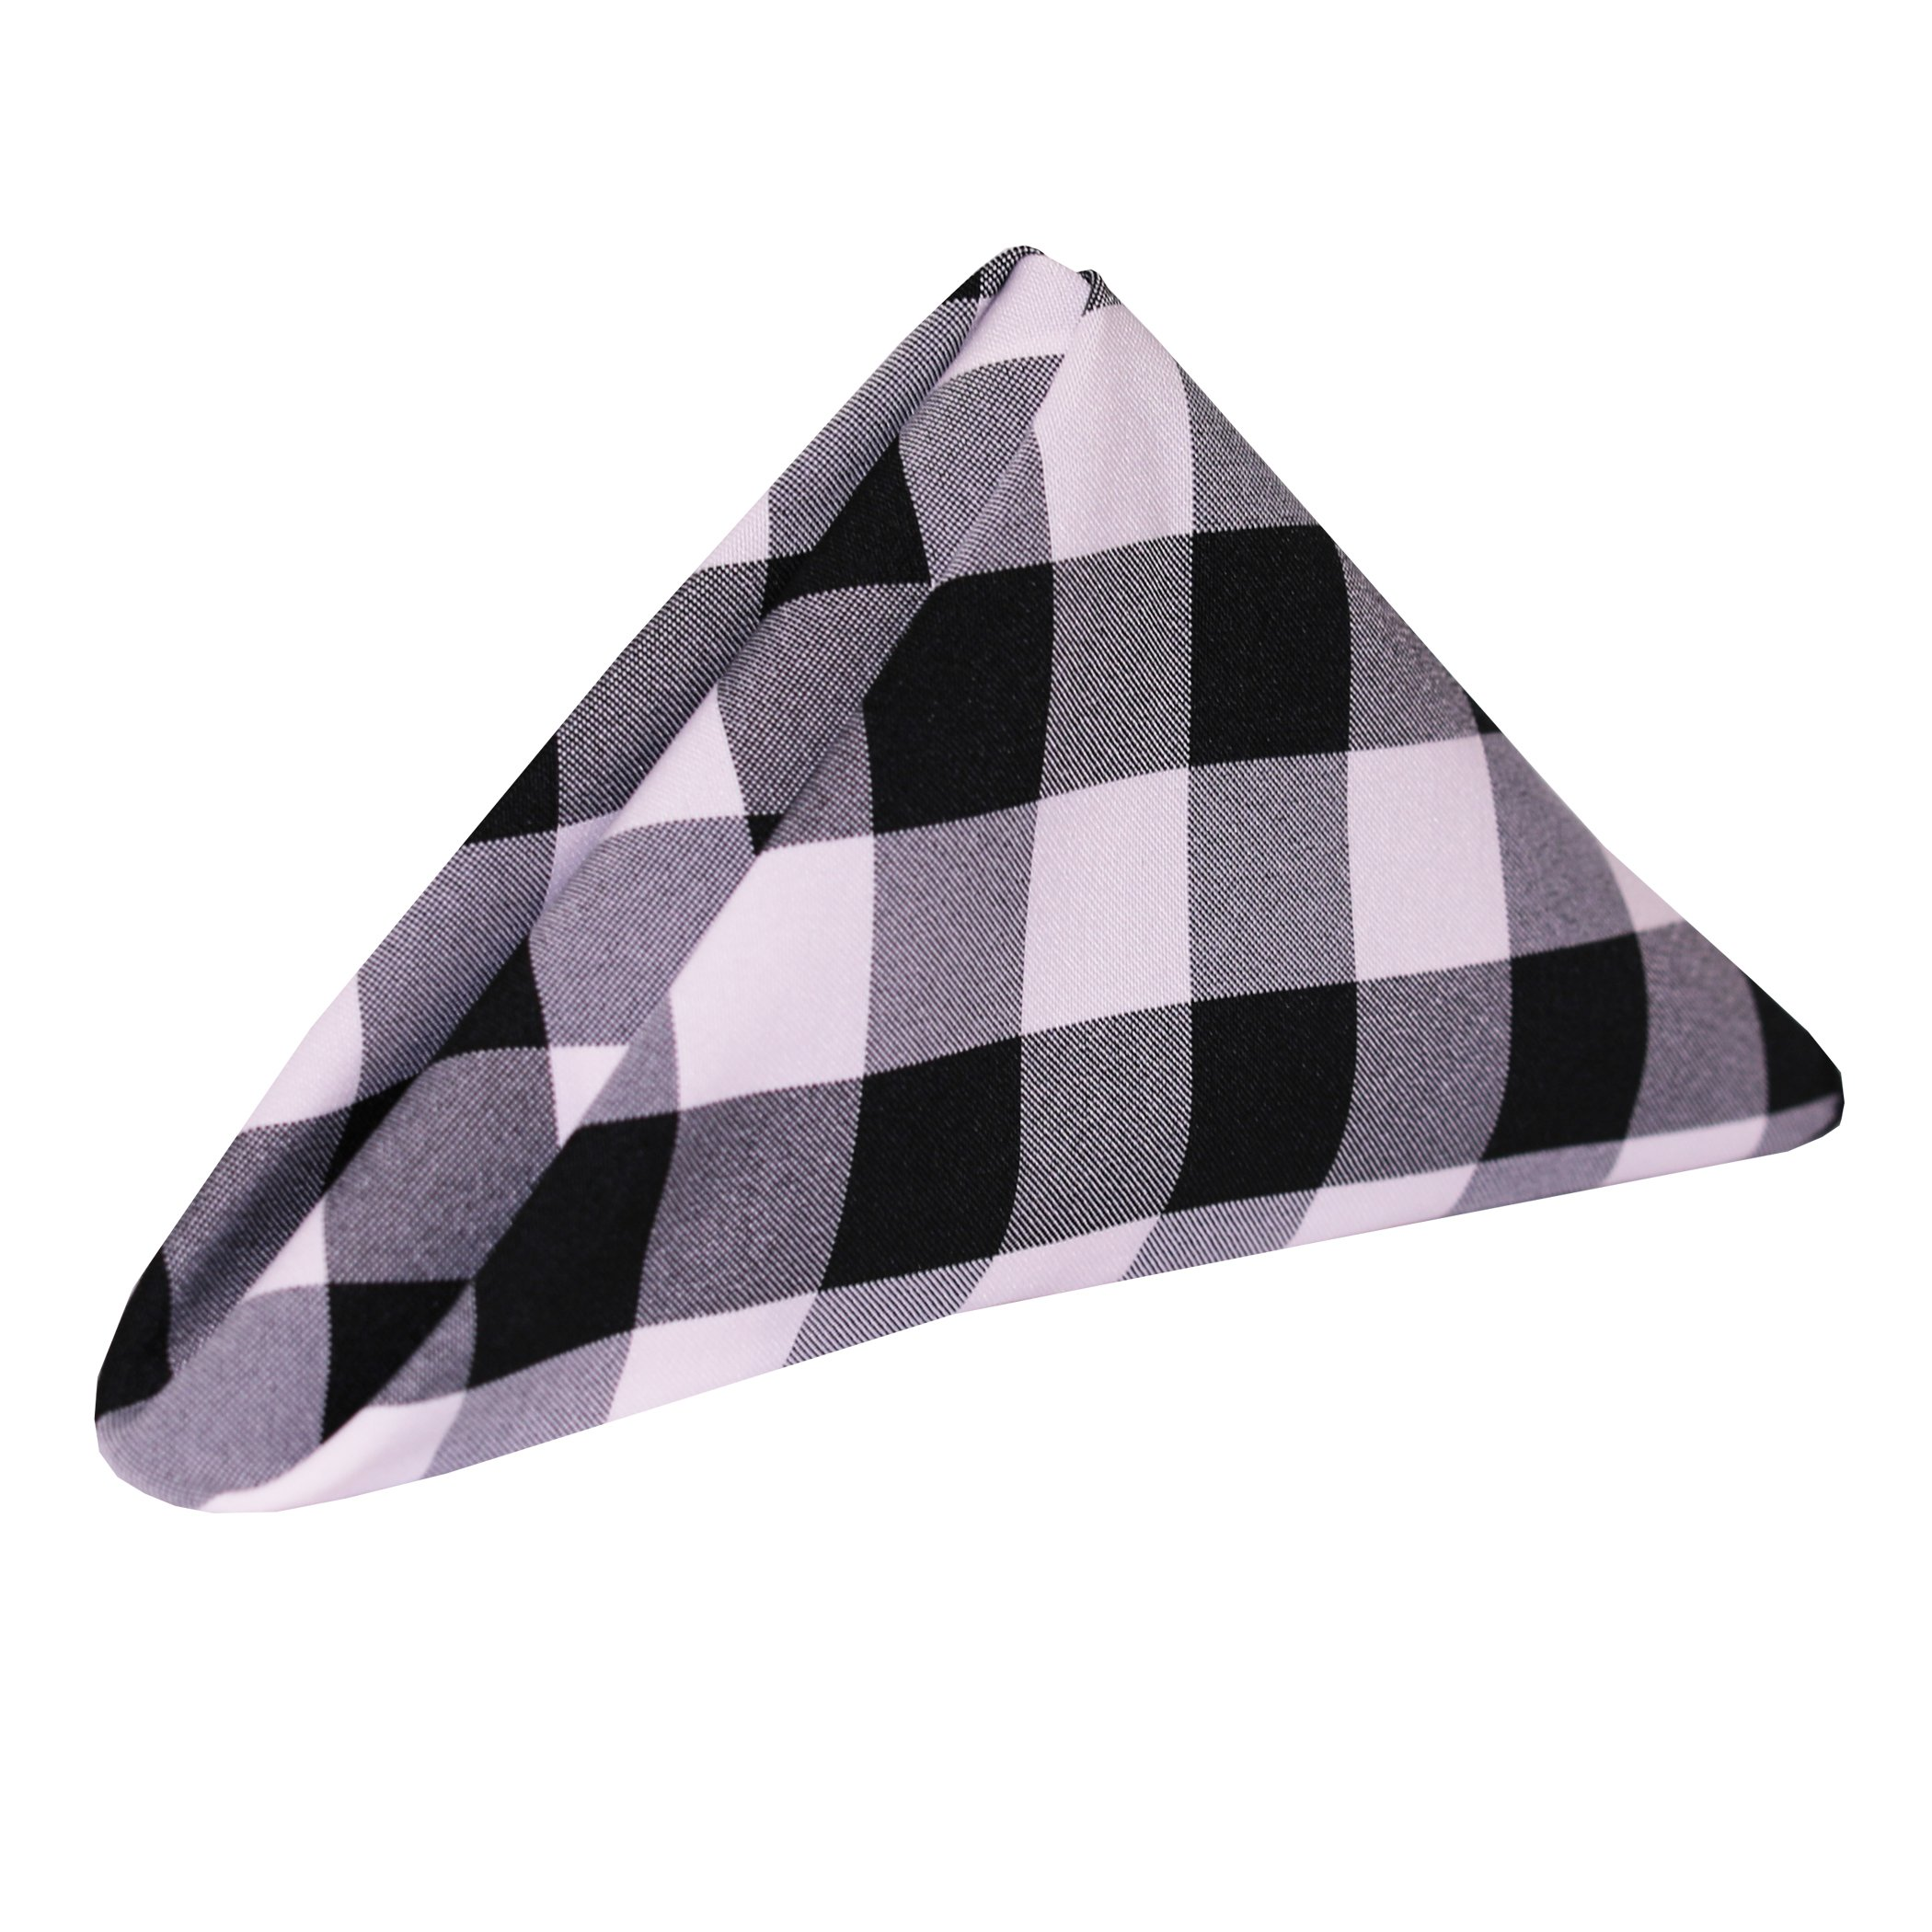 Ultimate Textile (5 Dozen) 20 x 20-Inch Polyester Checkered Cloth Dinner Napkins - for Picnic, Outdoor or Indoor Party use, Black and White